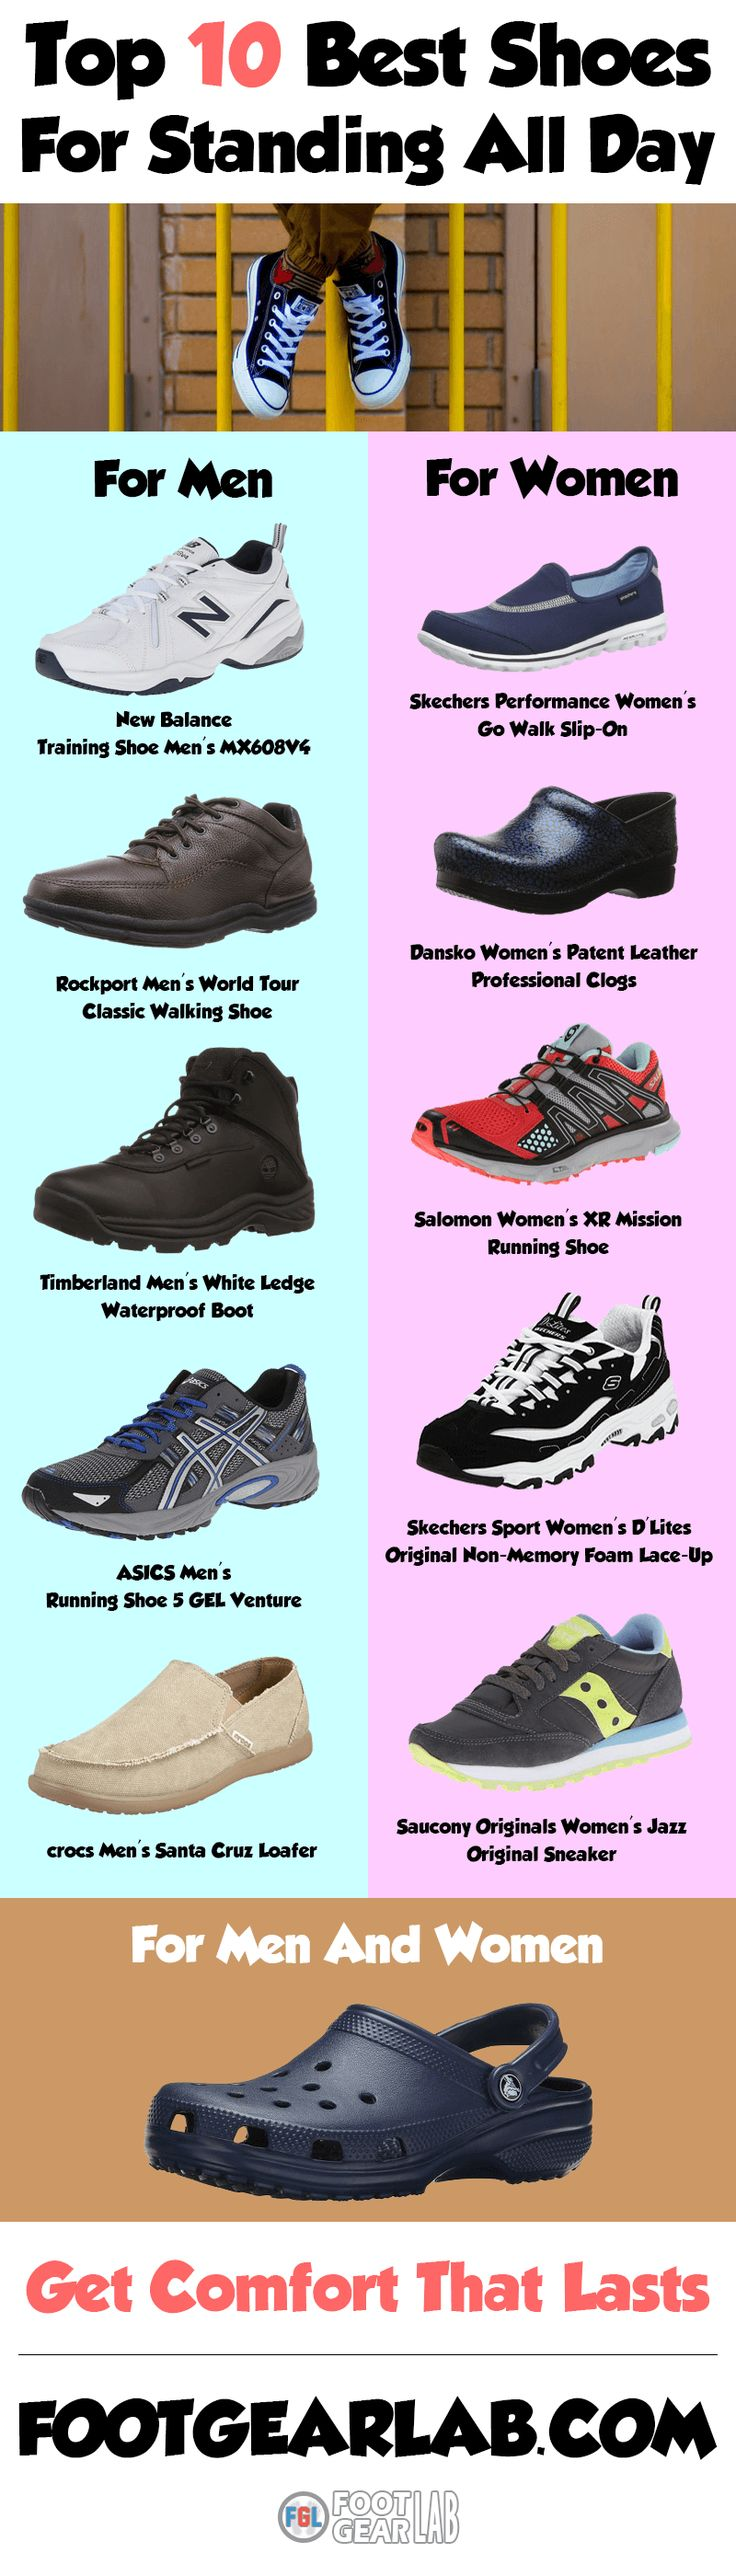 Best Shoes For Standing All Day On Your Feet - Get Comfort That Lasts #BestShoesForStandingAllDay #BestShoesForStanding